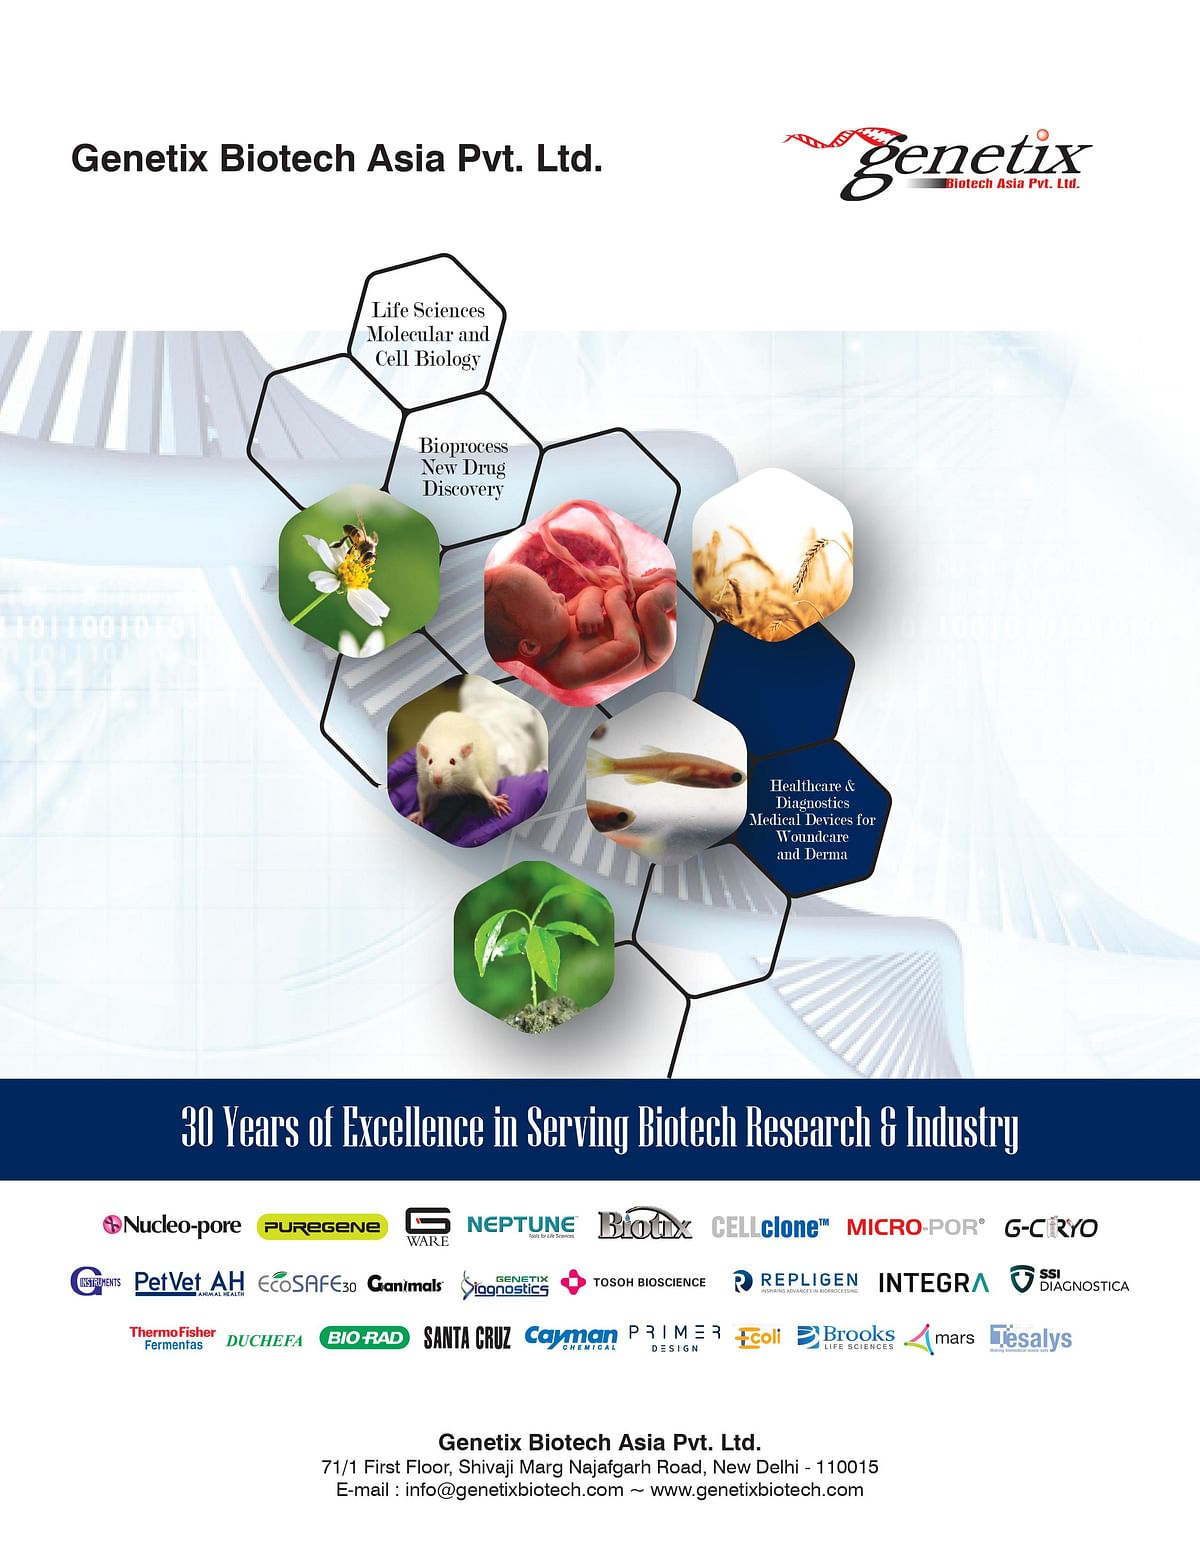 With 30 Years of Excellence in Biotech Research, Genetix Leads The Way